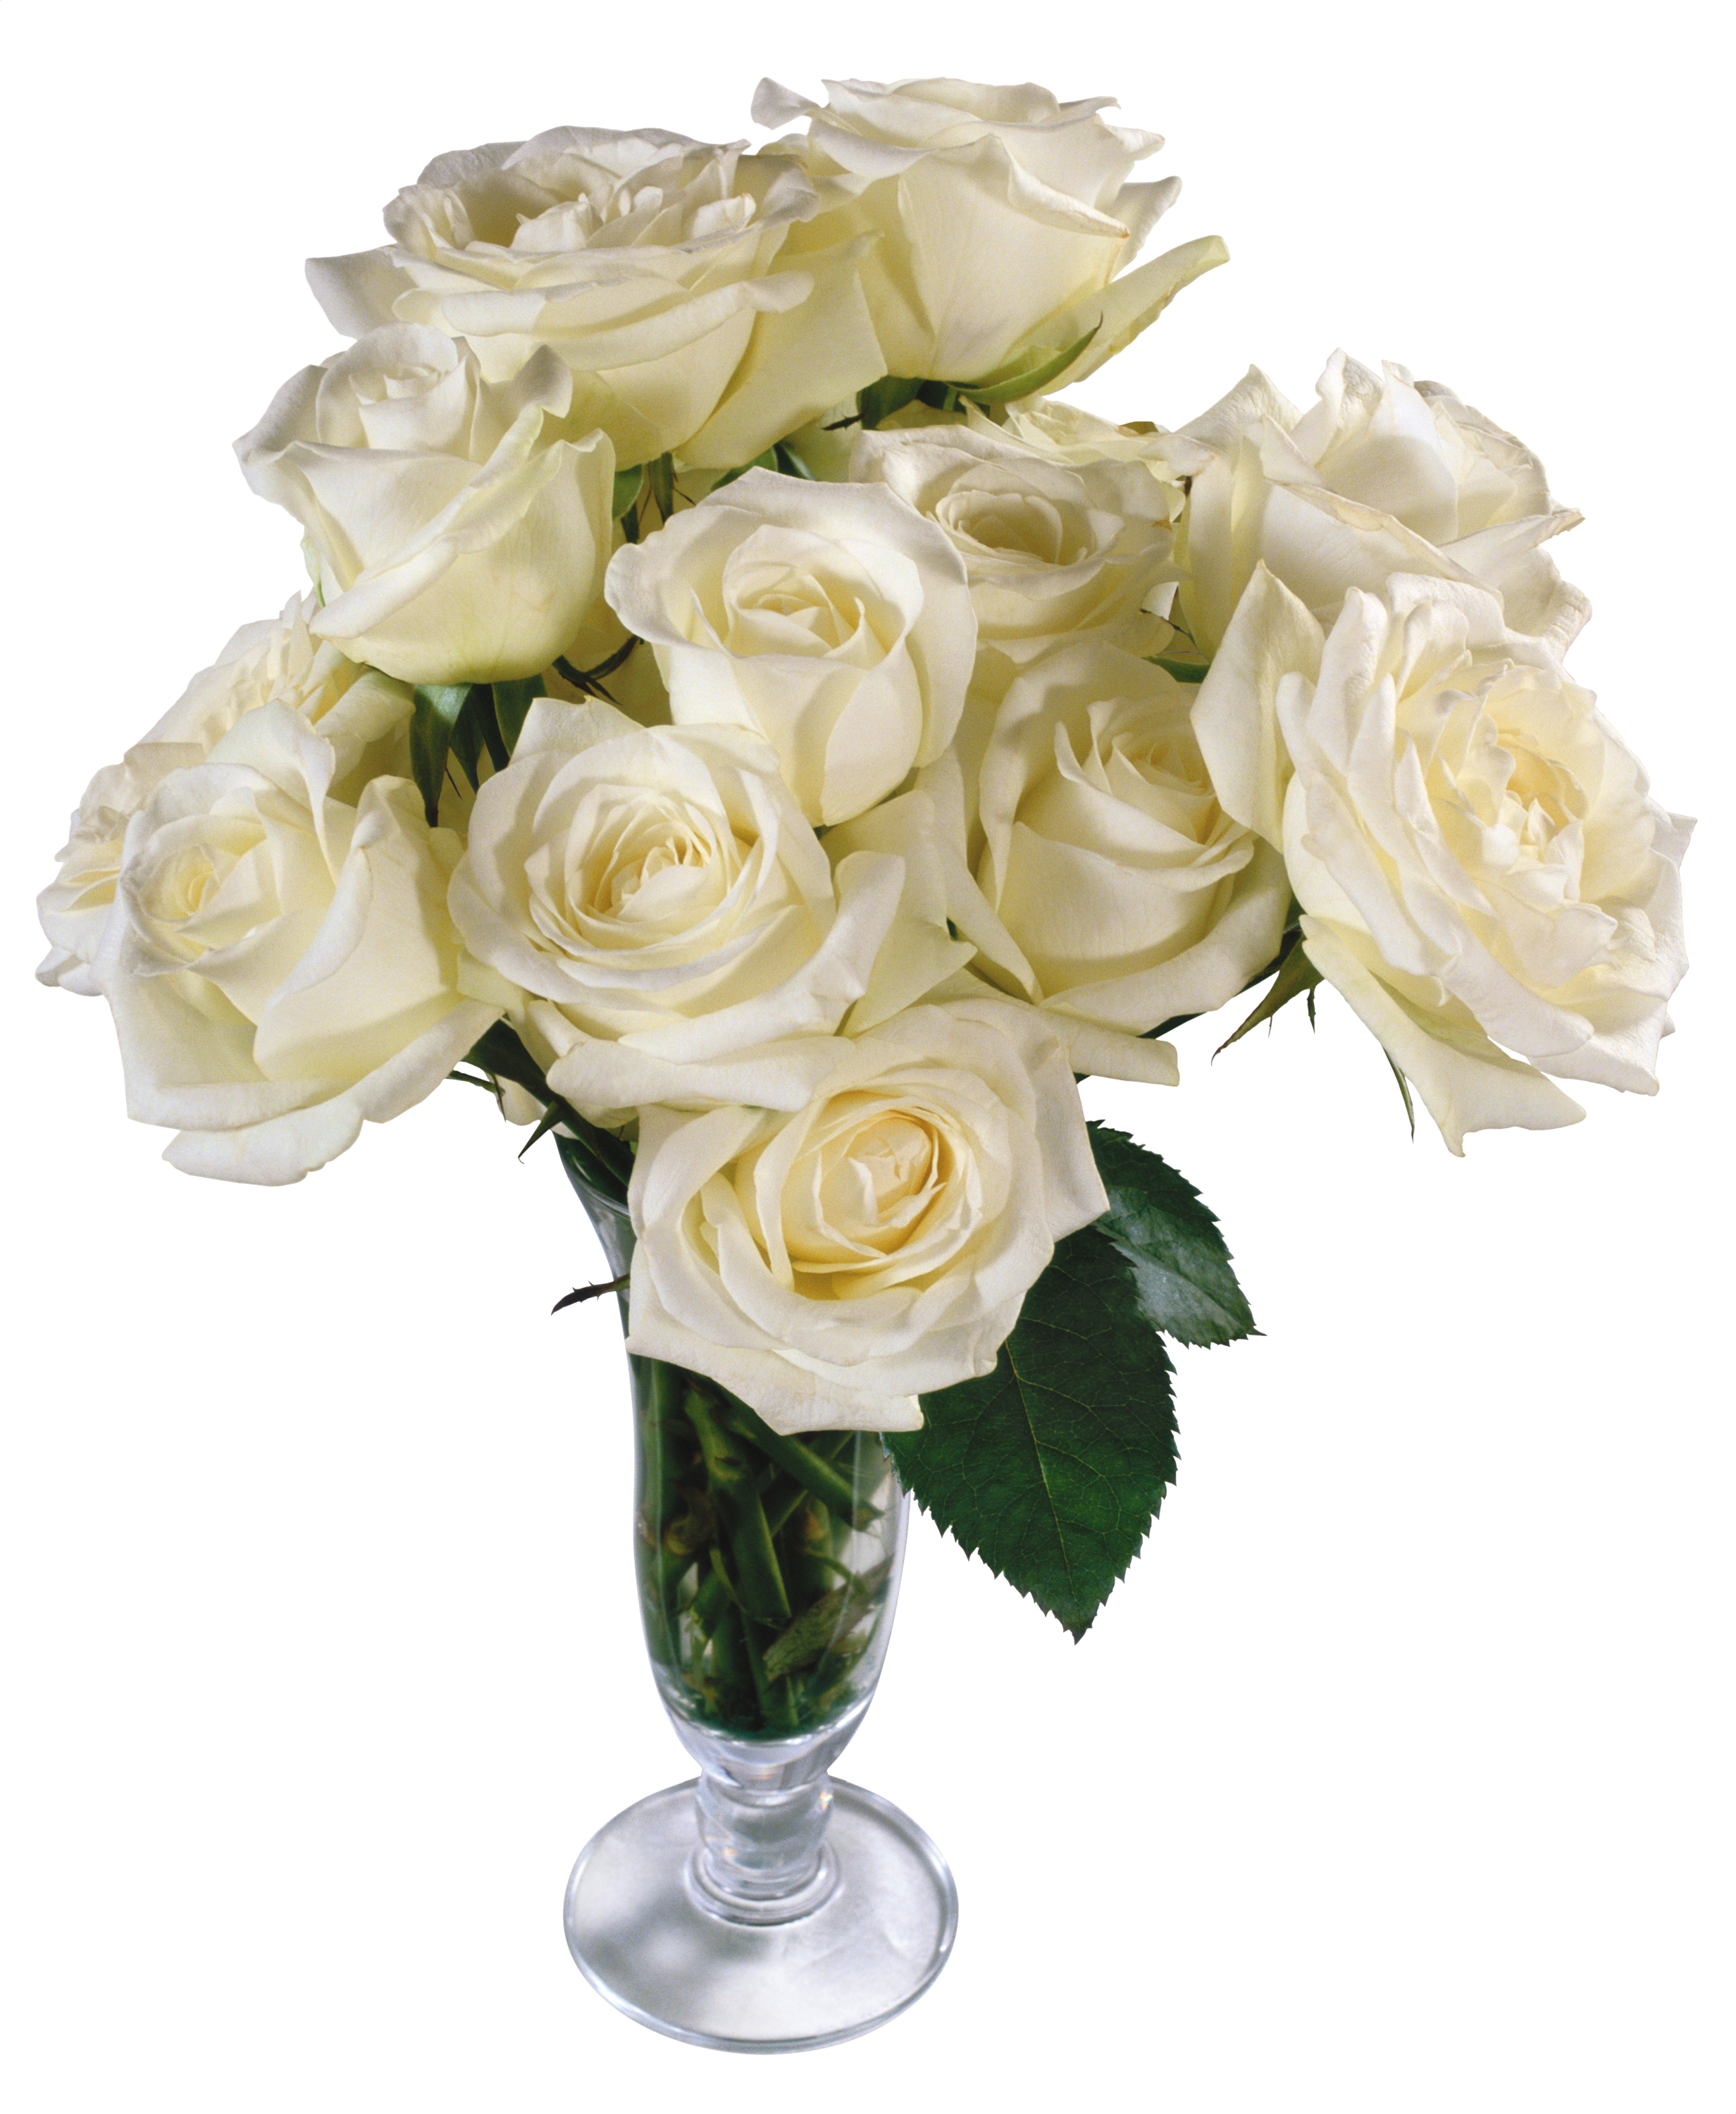 Flower Petal Cut Flowers Rose Bouquet PNG image #48789